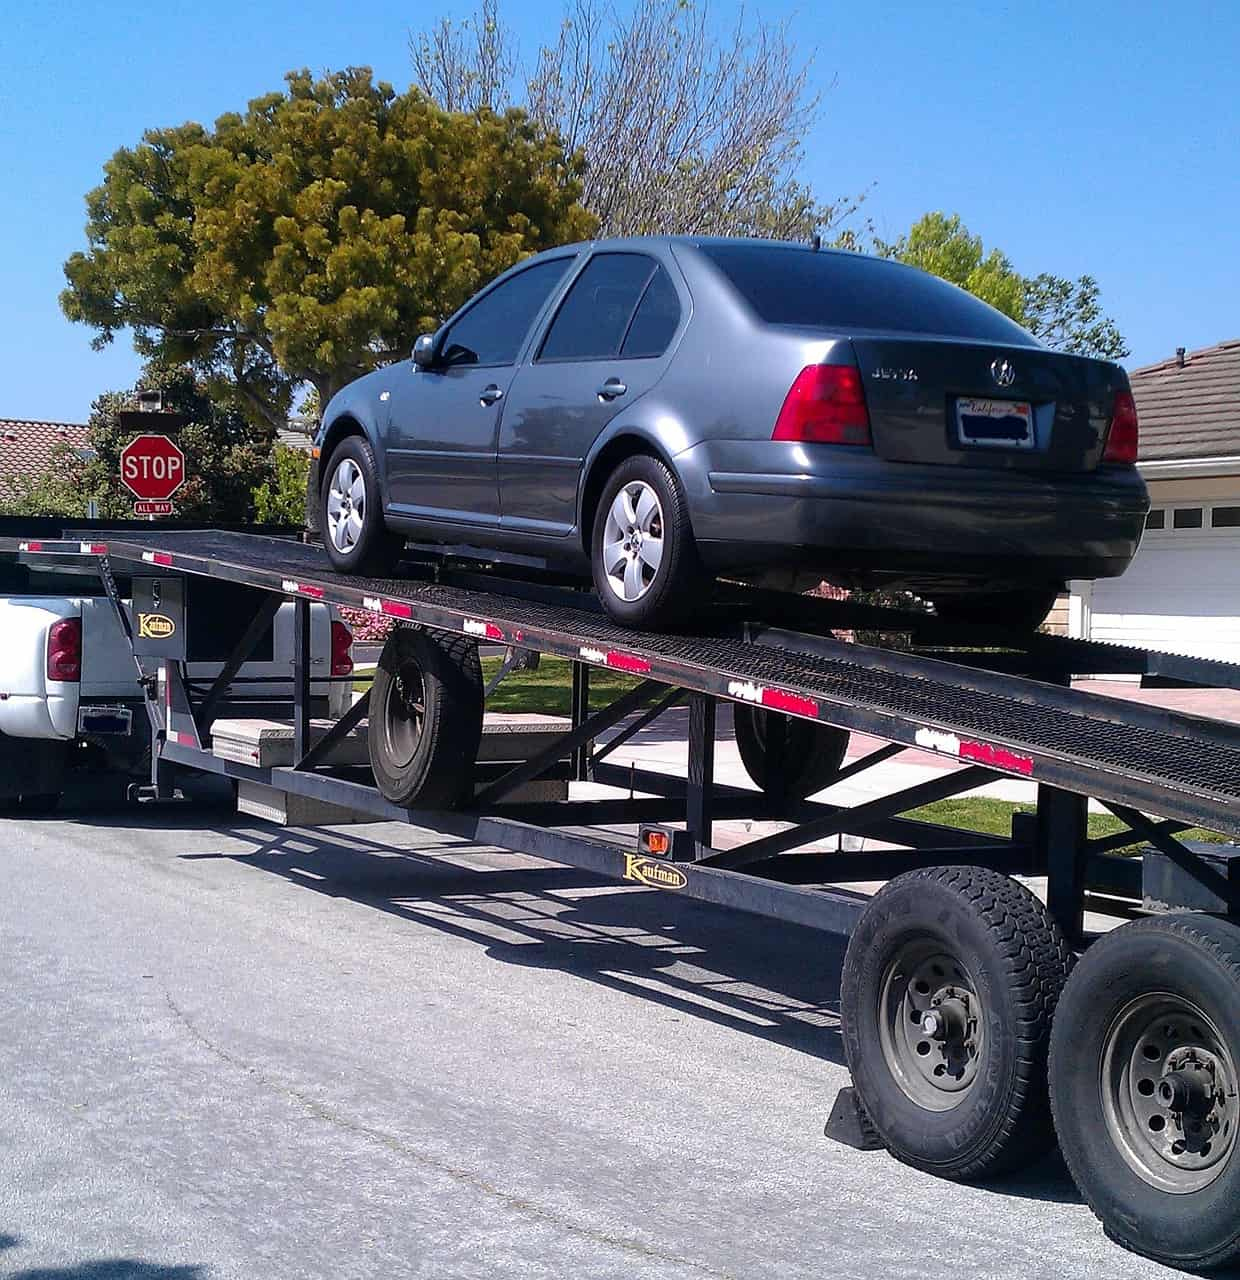 car being shipped